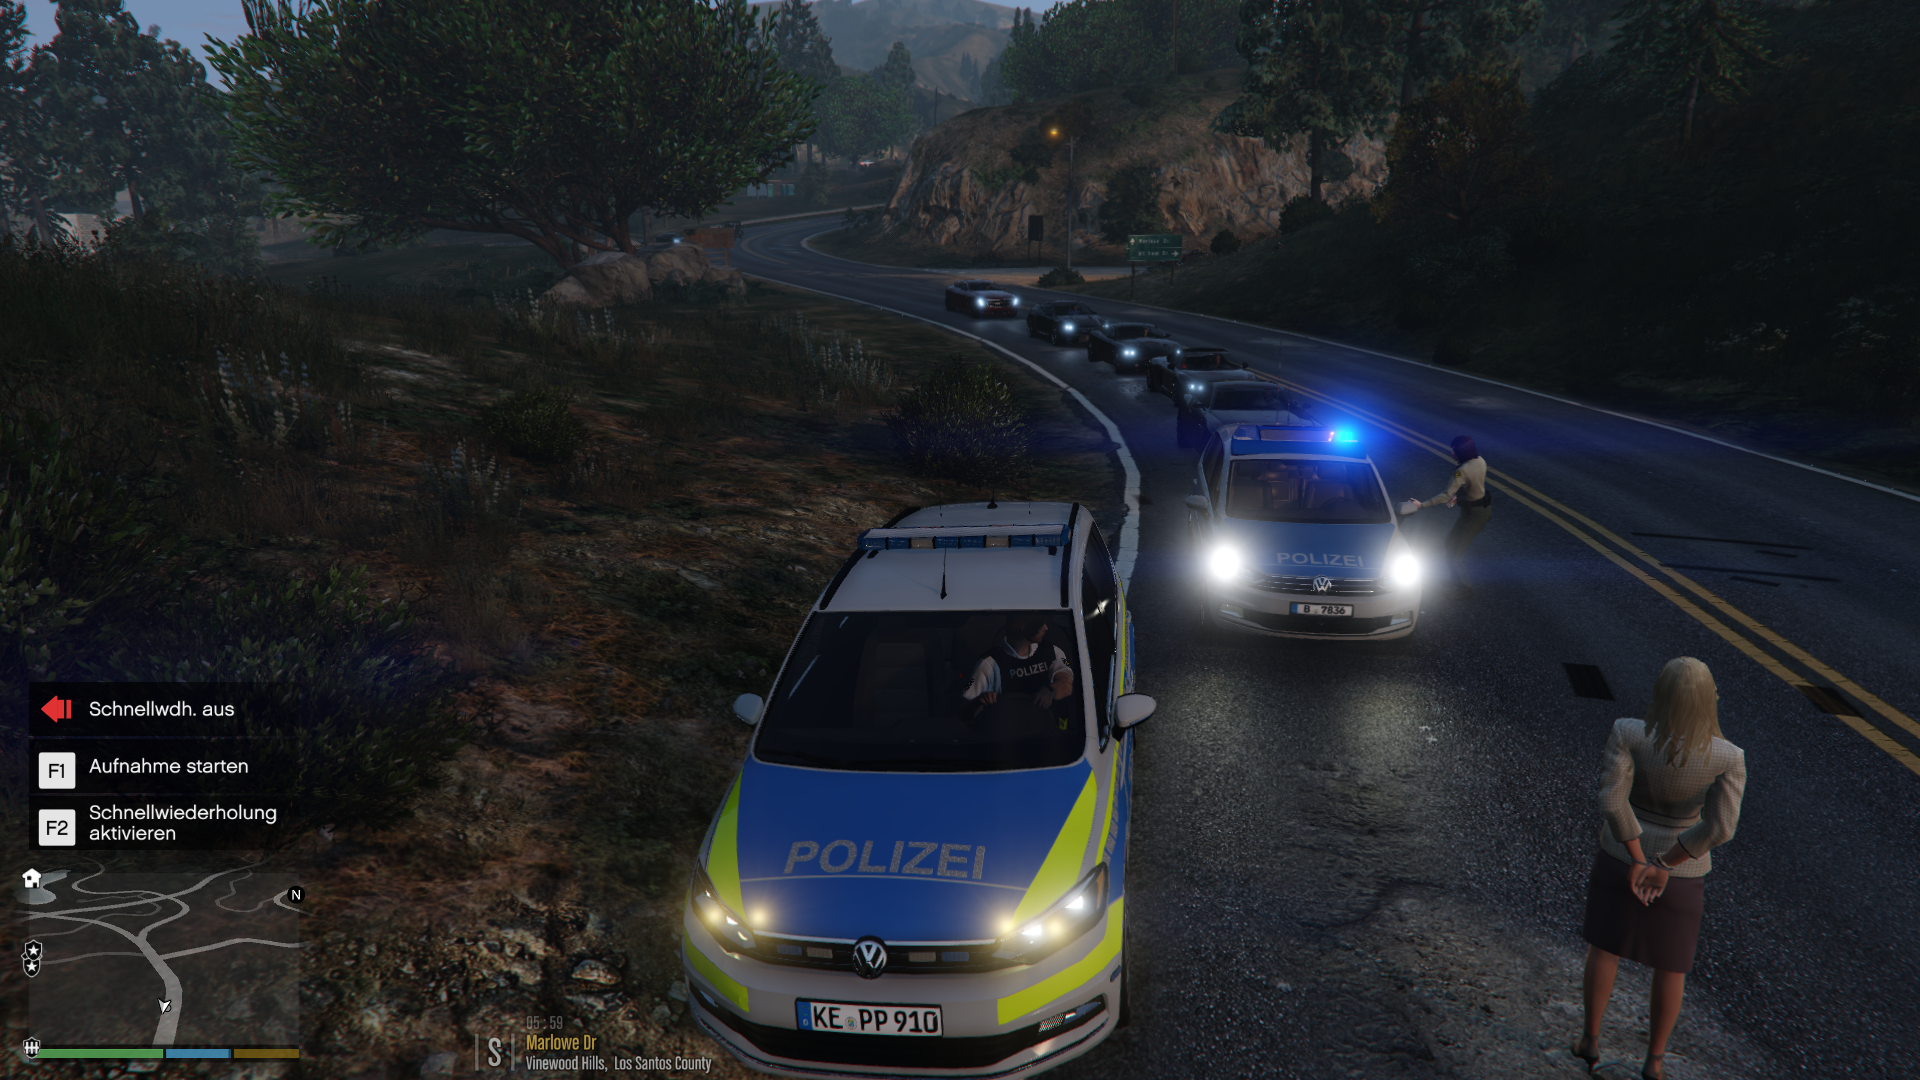 https://www.gameshots.eu/images/2019/08/27/Grand-Theft-Auto-V-Screenshot-2019.08.08---17.24.49.61.png